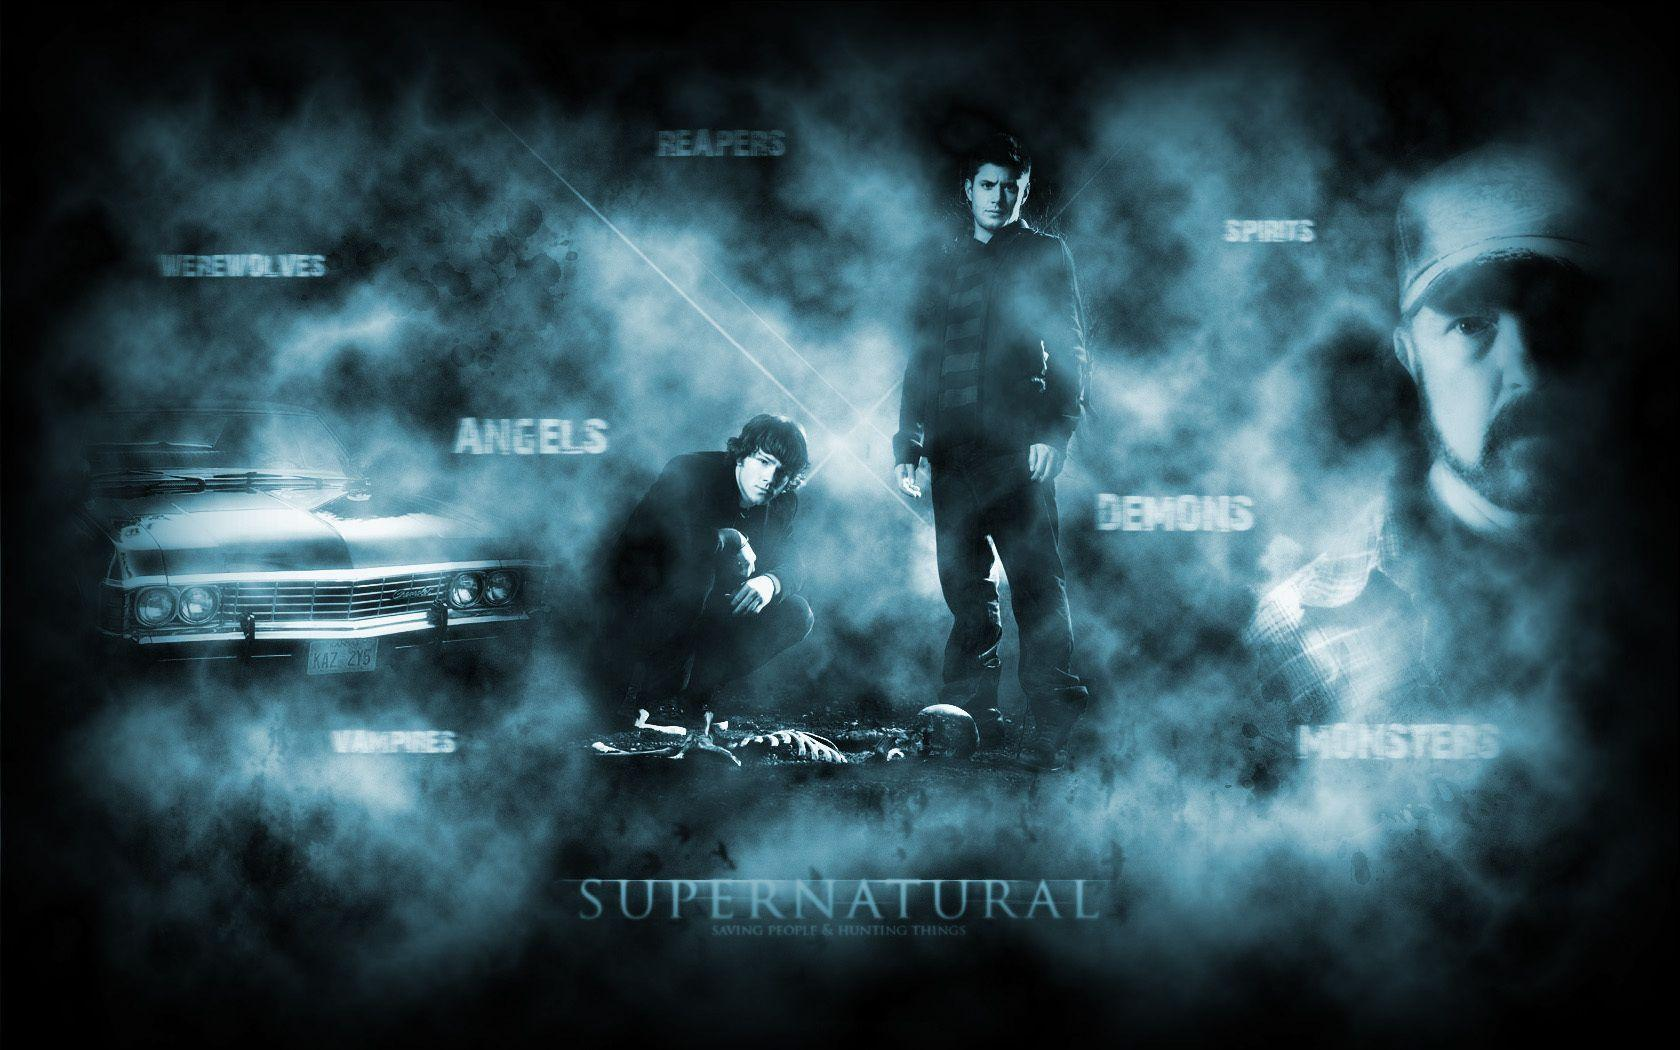 Supernatural Dark Widescreen Wallpapers